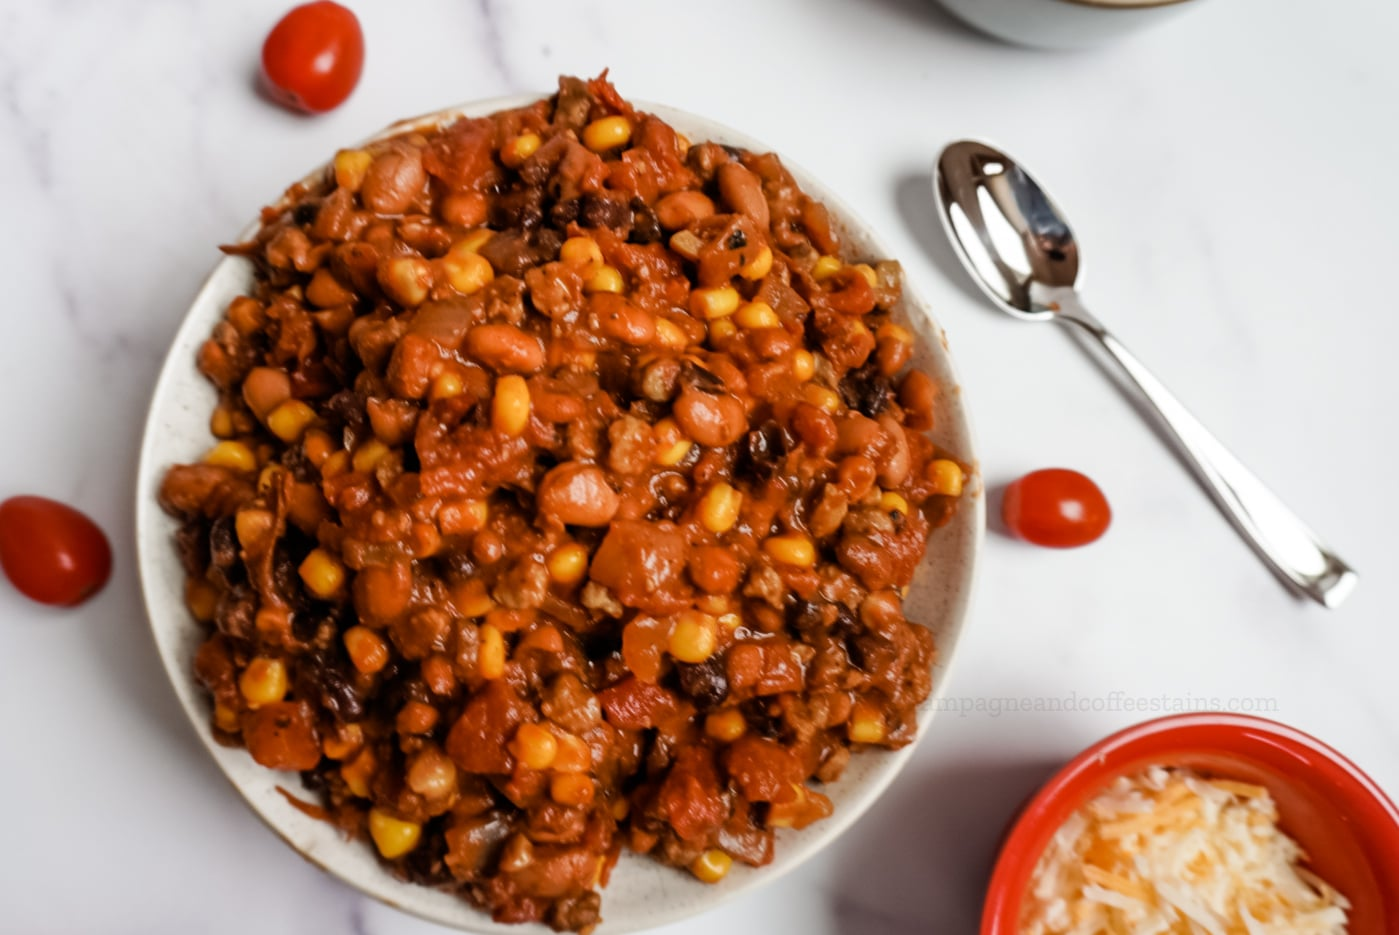 chili in a while bowl with tomatoes and a spoon